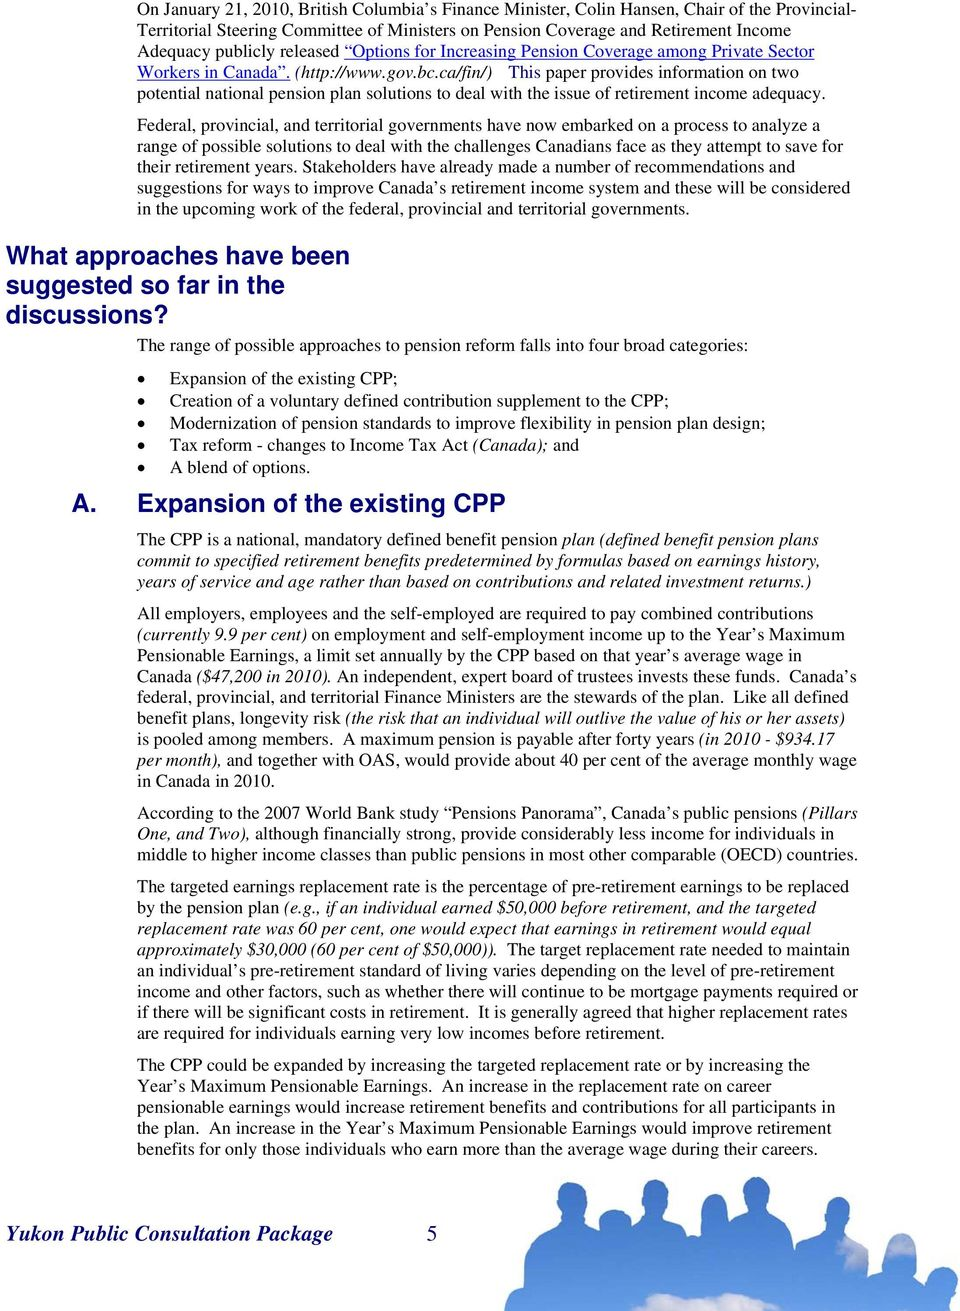 ca/fin/) This paper provides information on two potential national pension plan solutions to deal with the issue of retirement income adequacy.